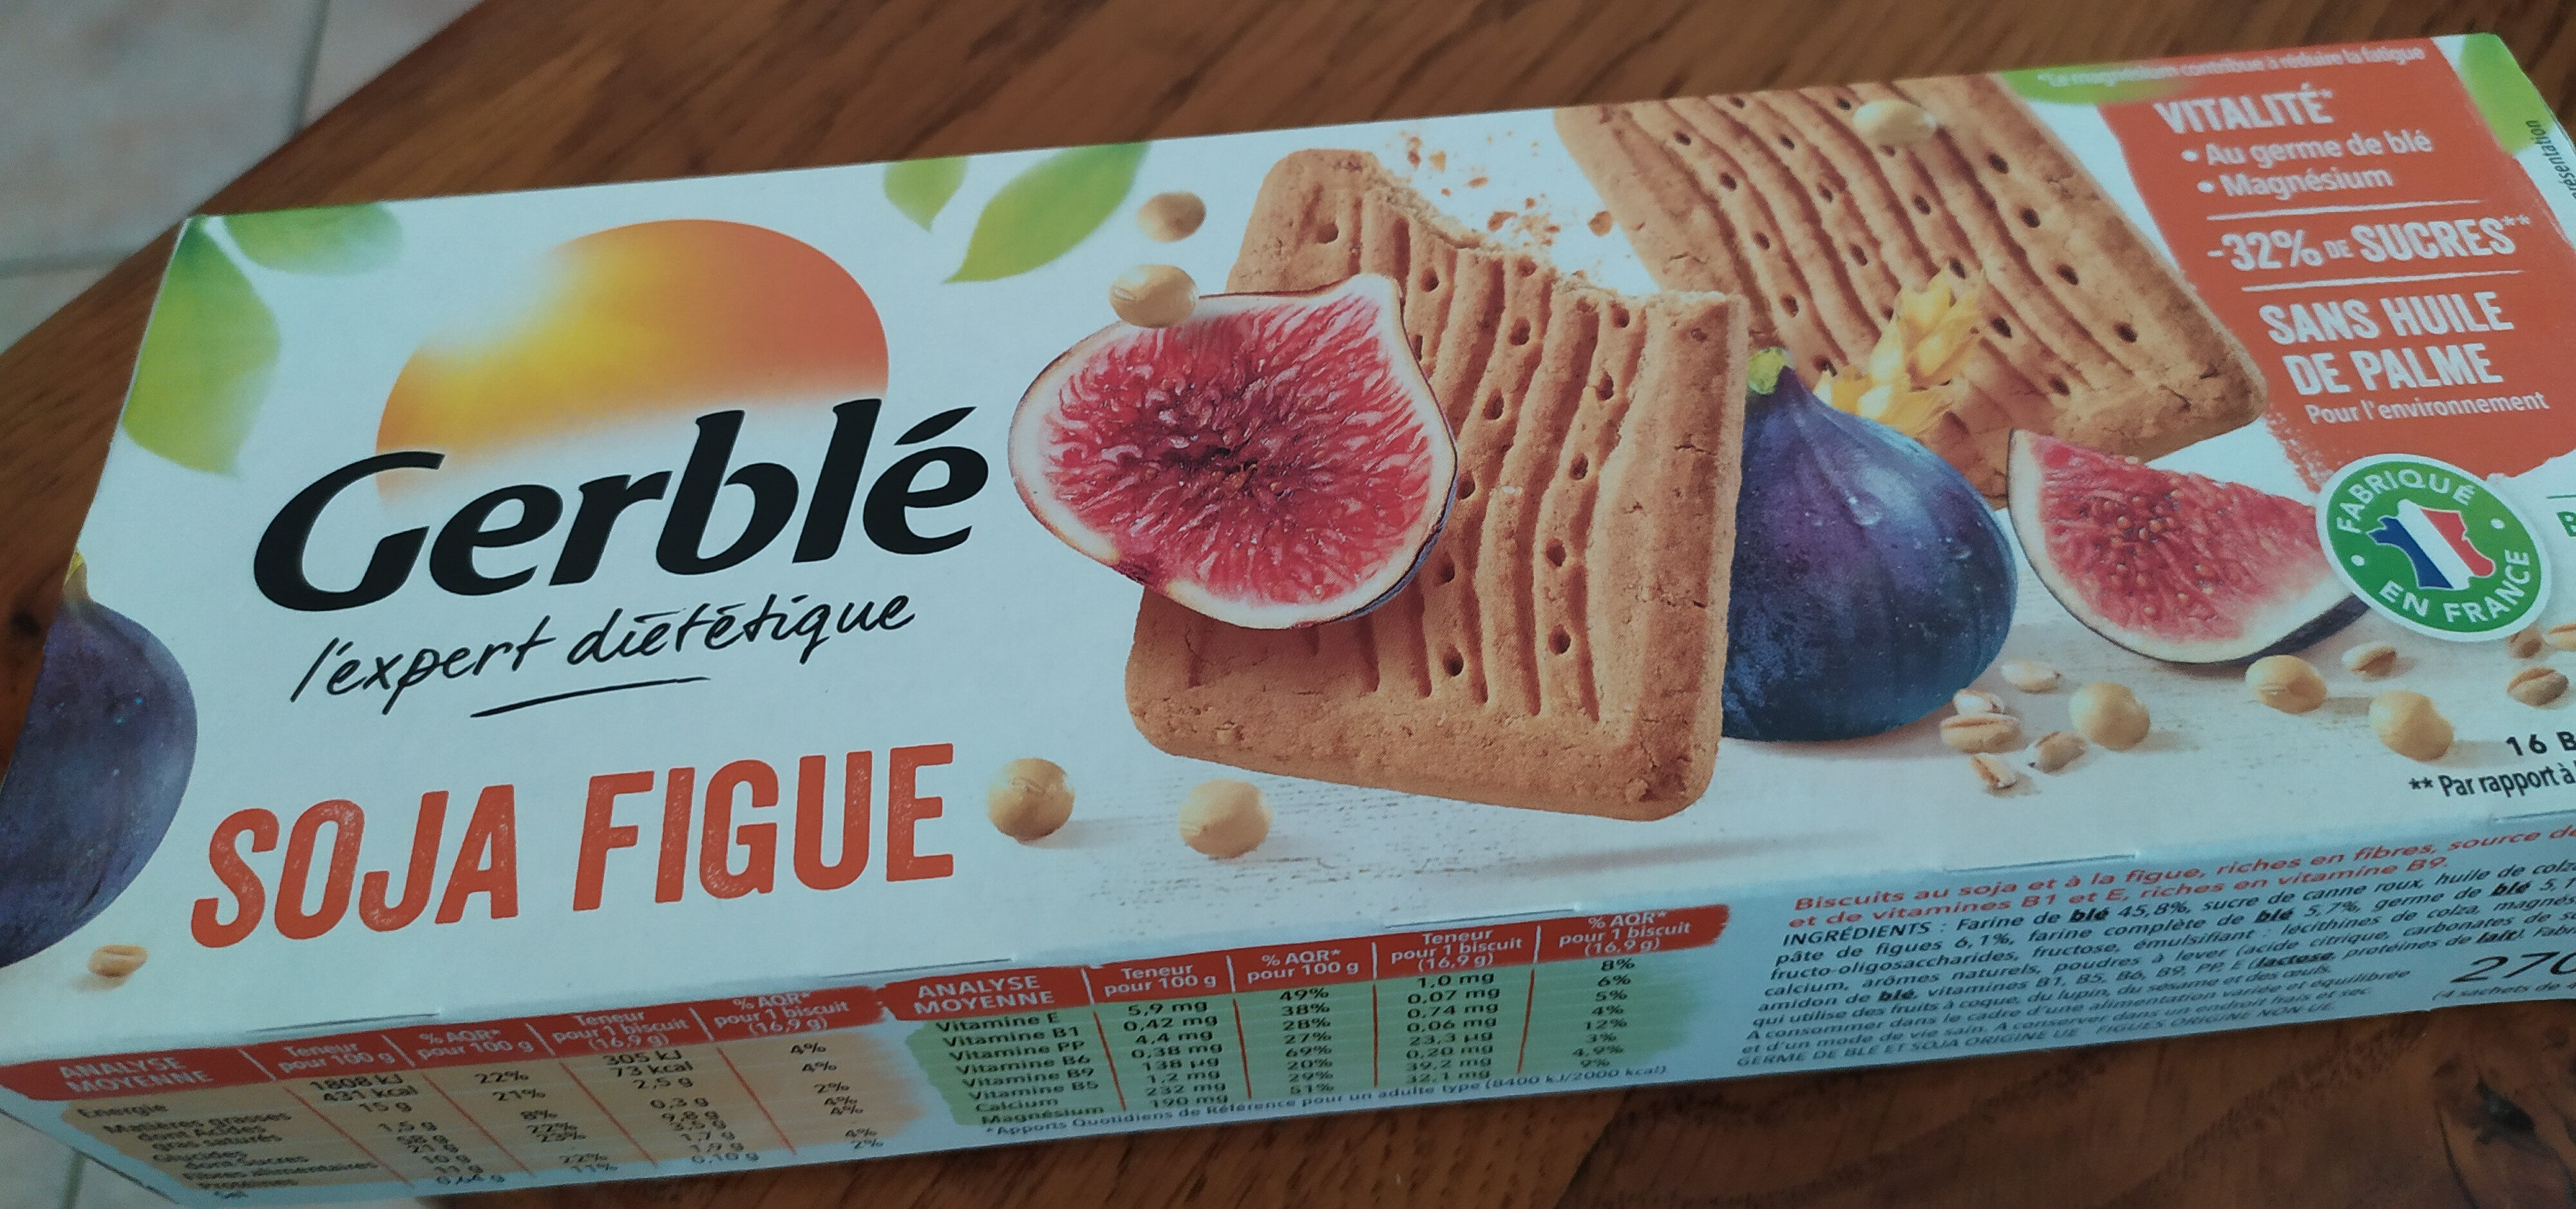 biscuit soja figue - Product - fr